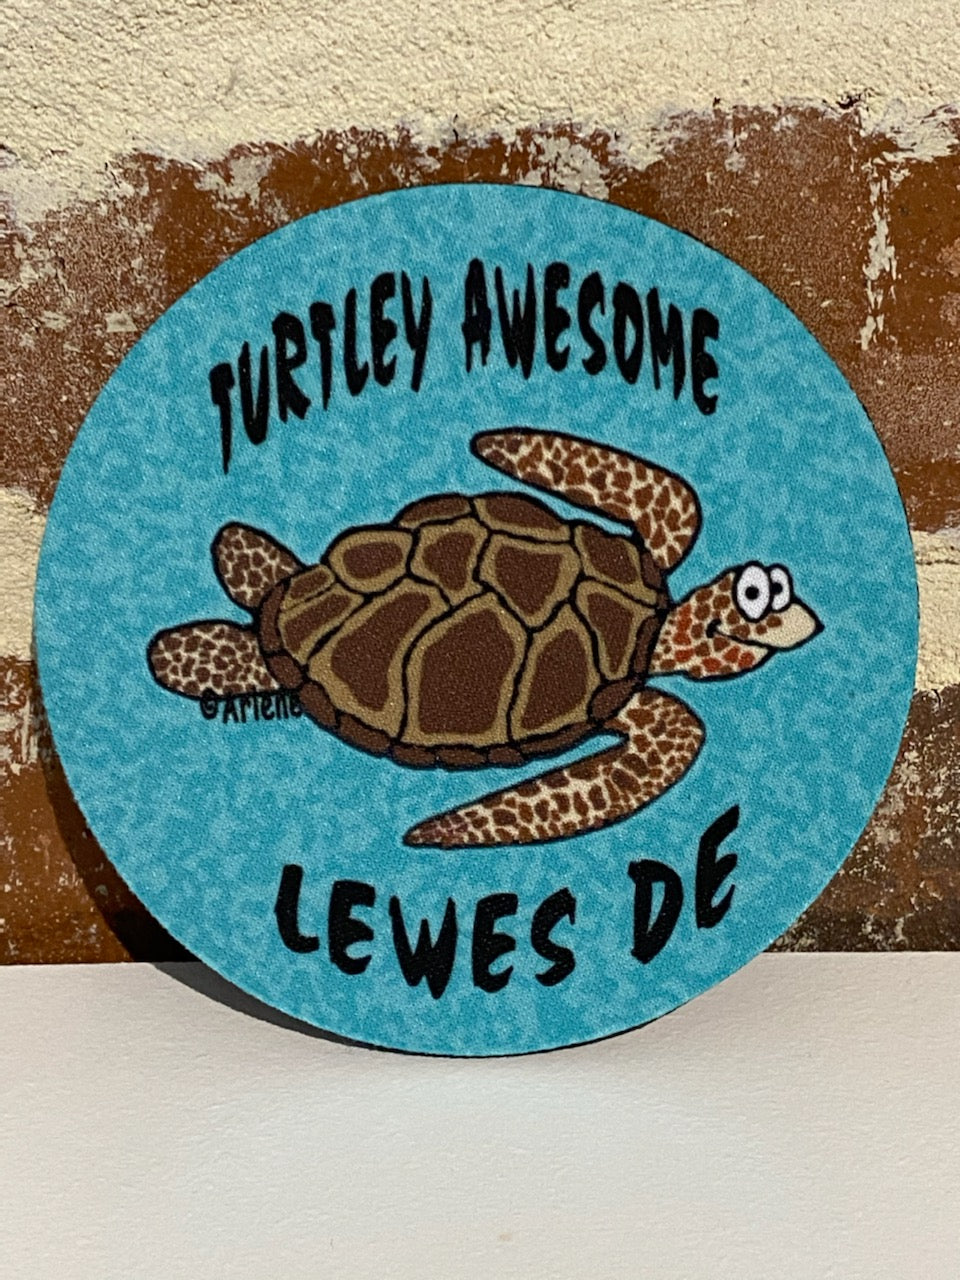 LEWES TURTLEY AWESOME COASTER